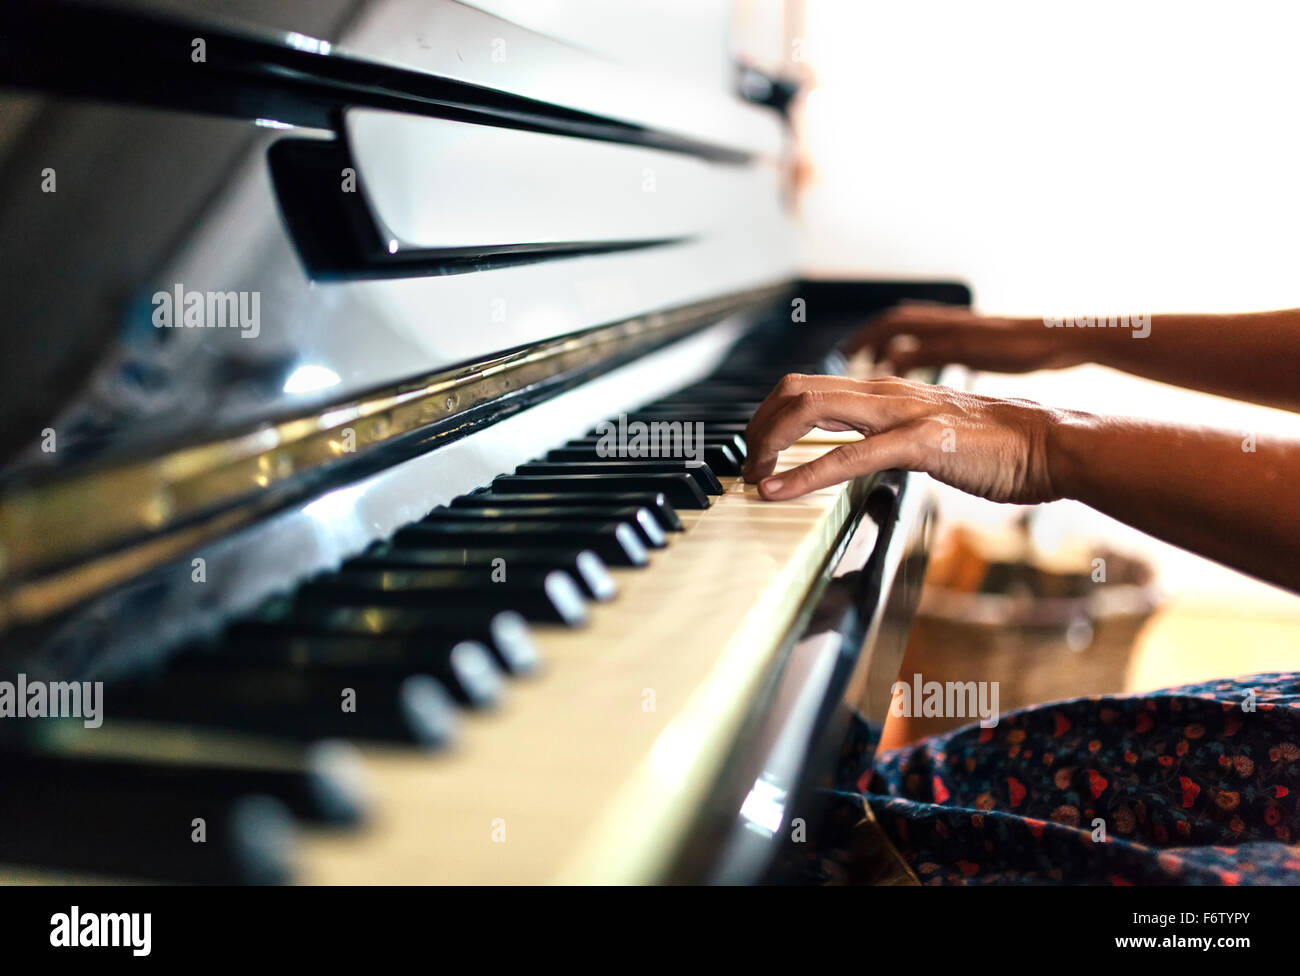 Close-up of woman playing piano - Stock Image